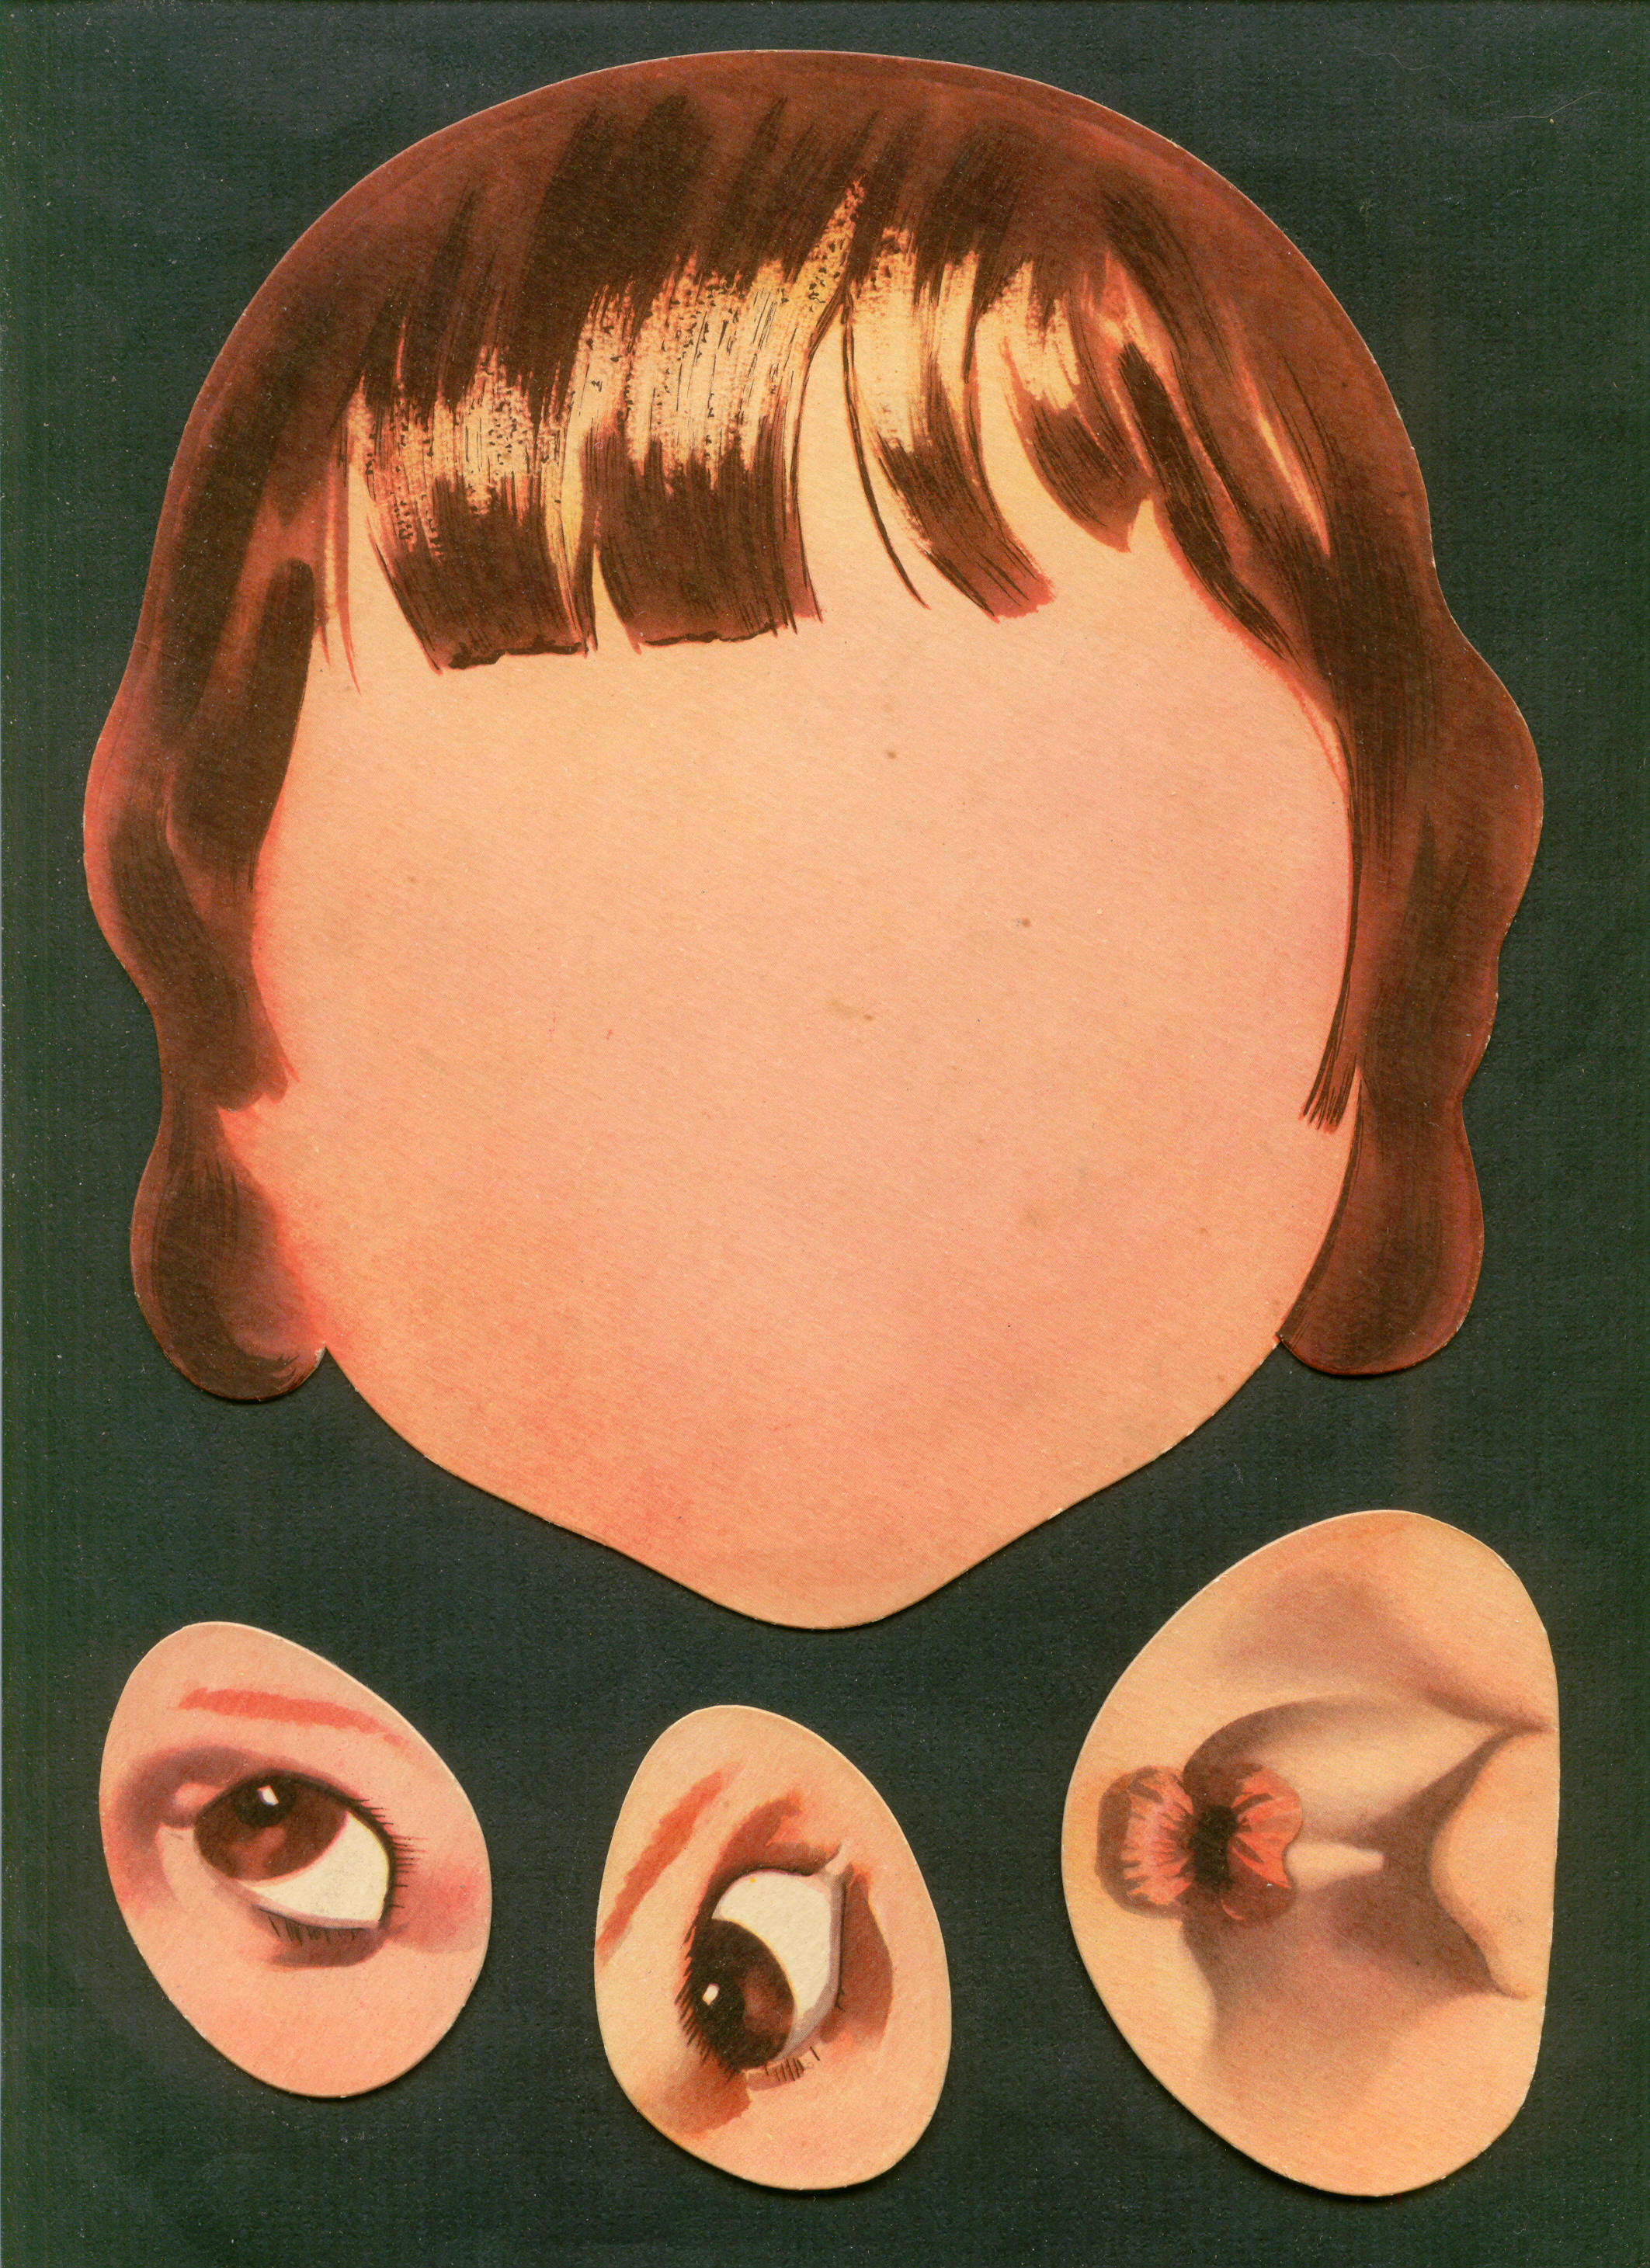 Physogs (1930)